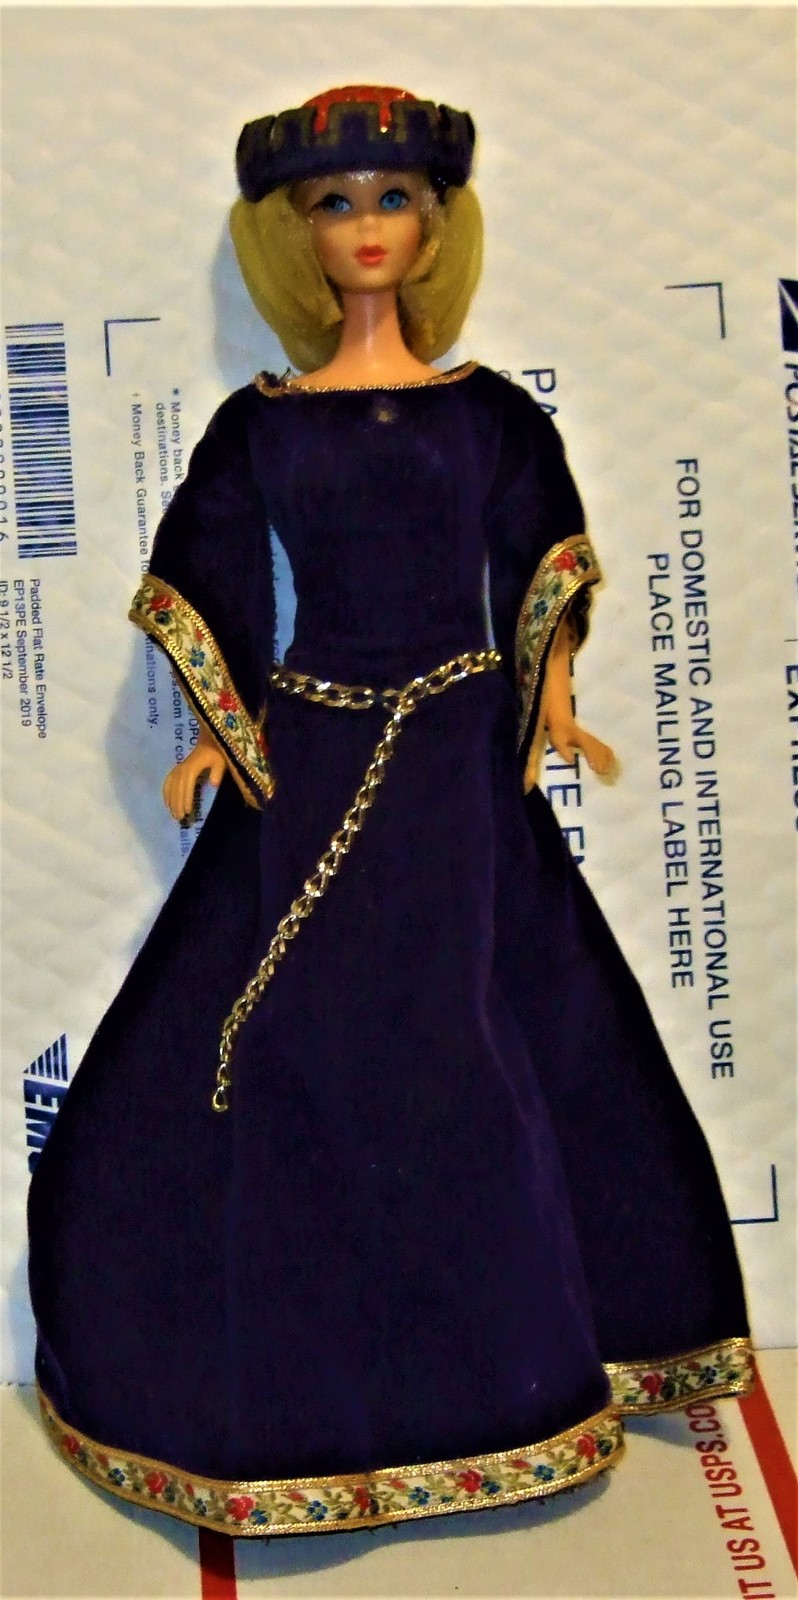 Primary image for Vintage Barbie Doll 1964 Guinevere Fashion #0873